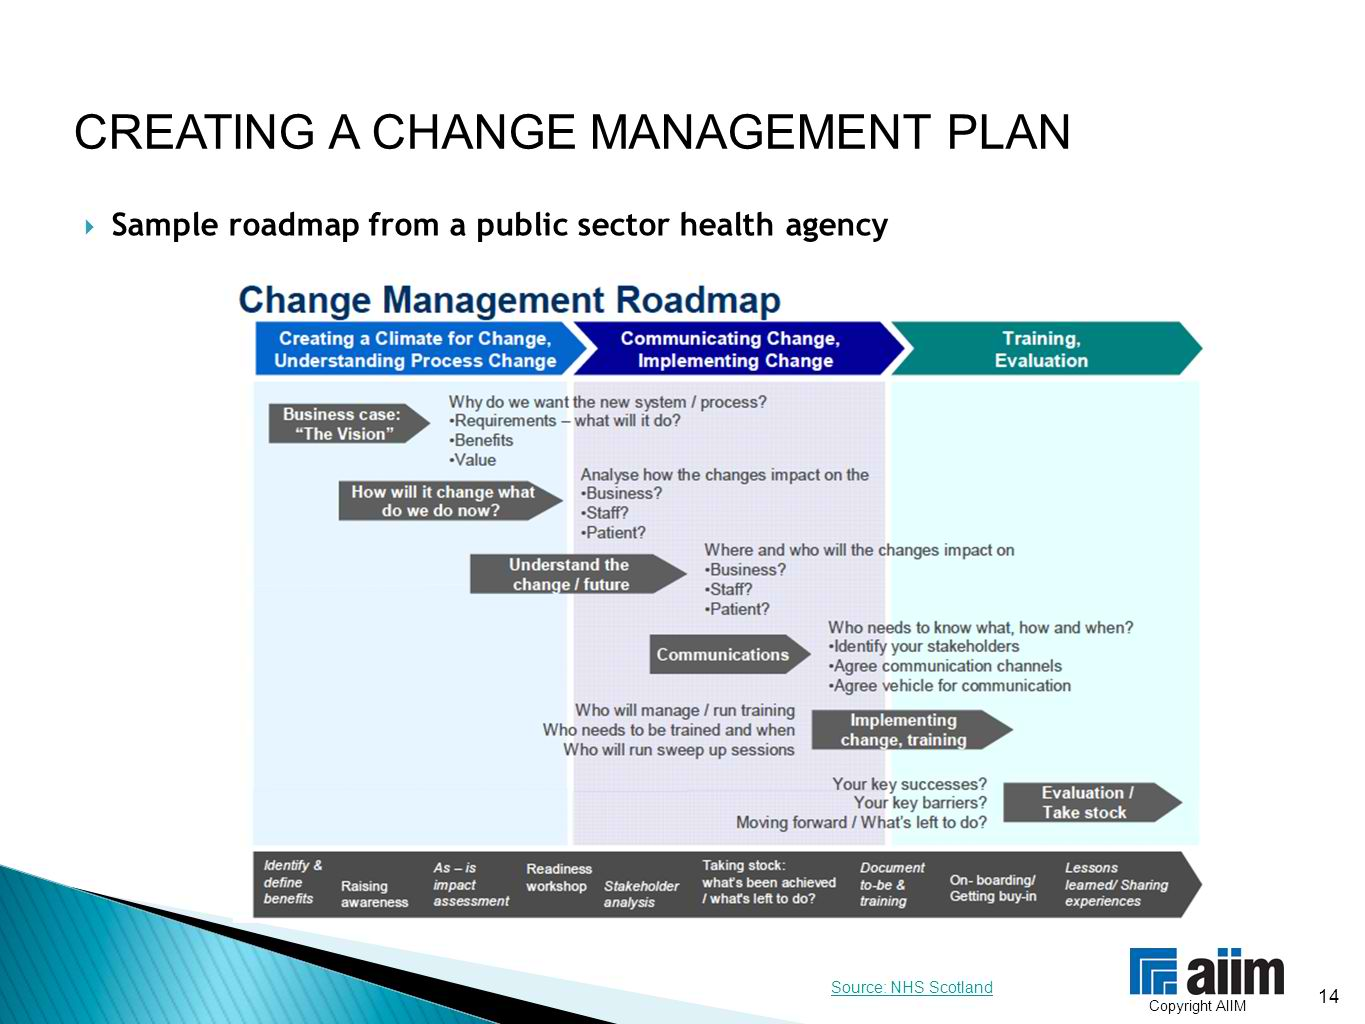 13 Change Management Plan Examples In